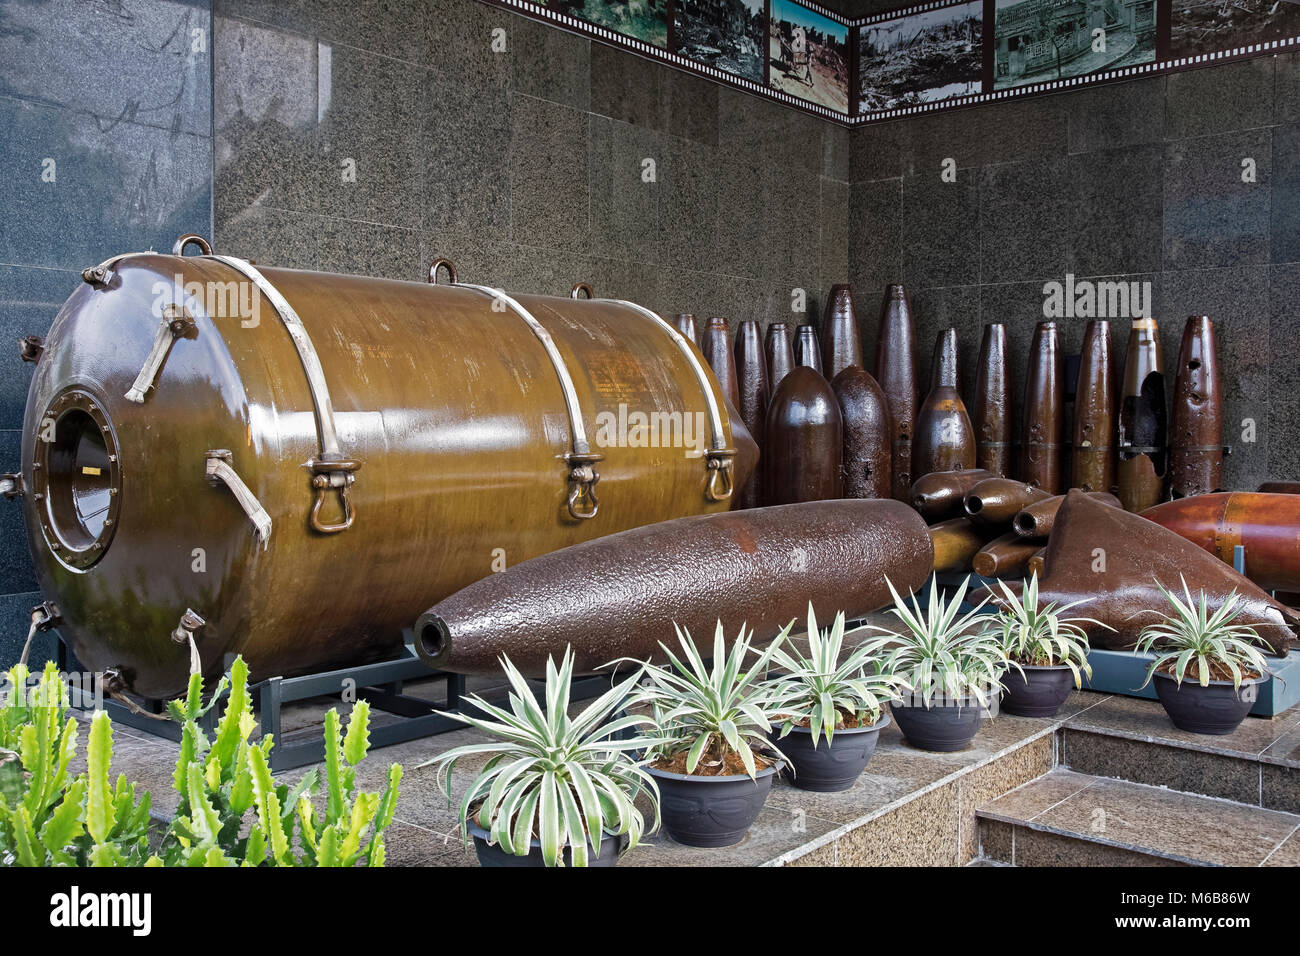 Bombs on display in the War Remnants Museum in Ho Chi Minh City Vietnam - Stock Image